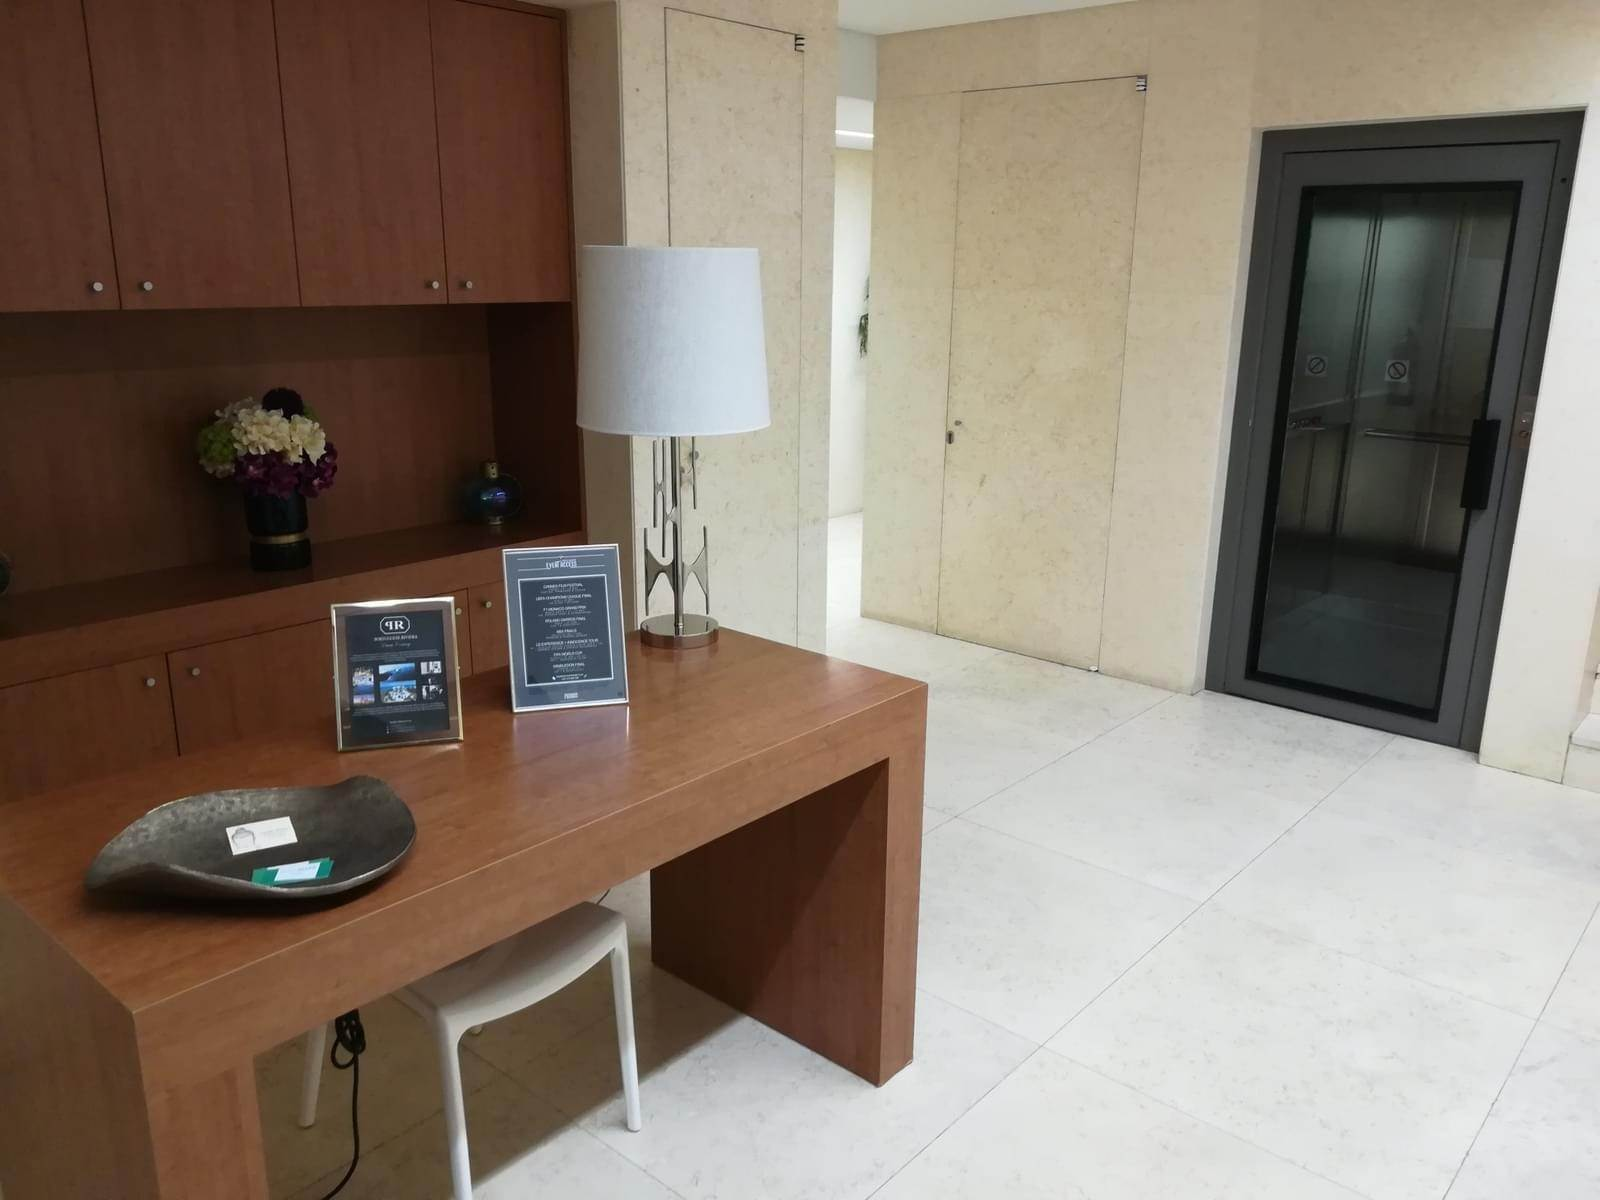 56. Апартаменты / Квартиры для того Аренда на 4+1 bedroom apartment, with a 286 sqm area, placed in Estoril Sol Residence.The apartment is composed by a 11 sqm entry ... Cascais, Португалия